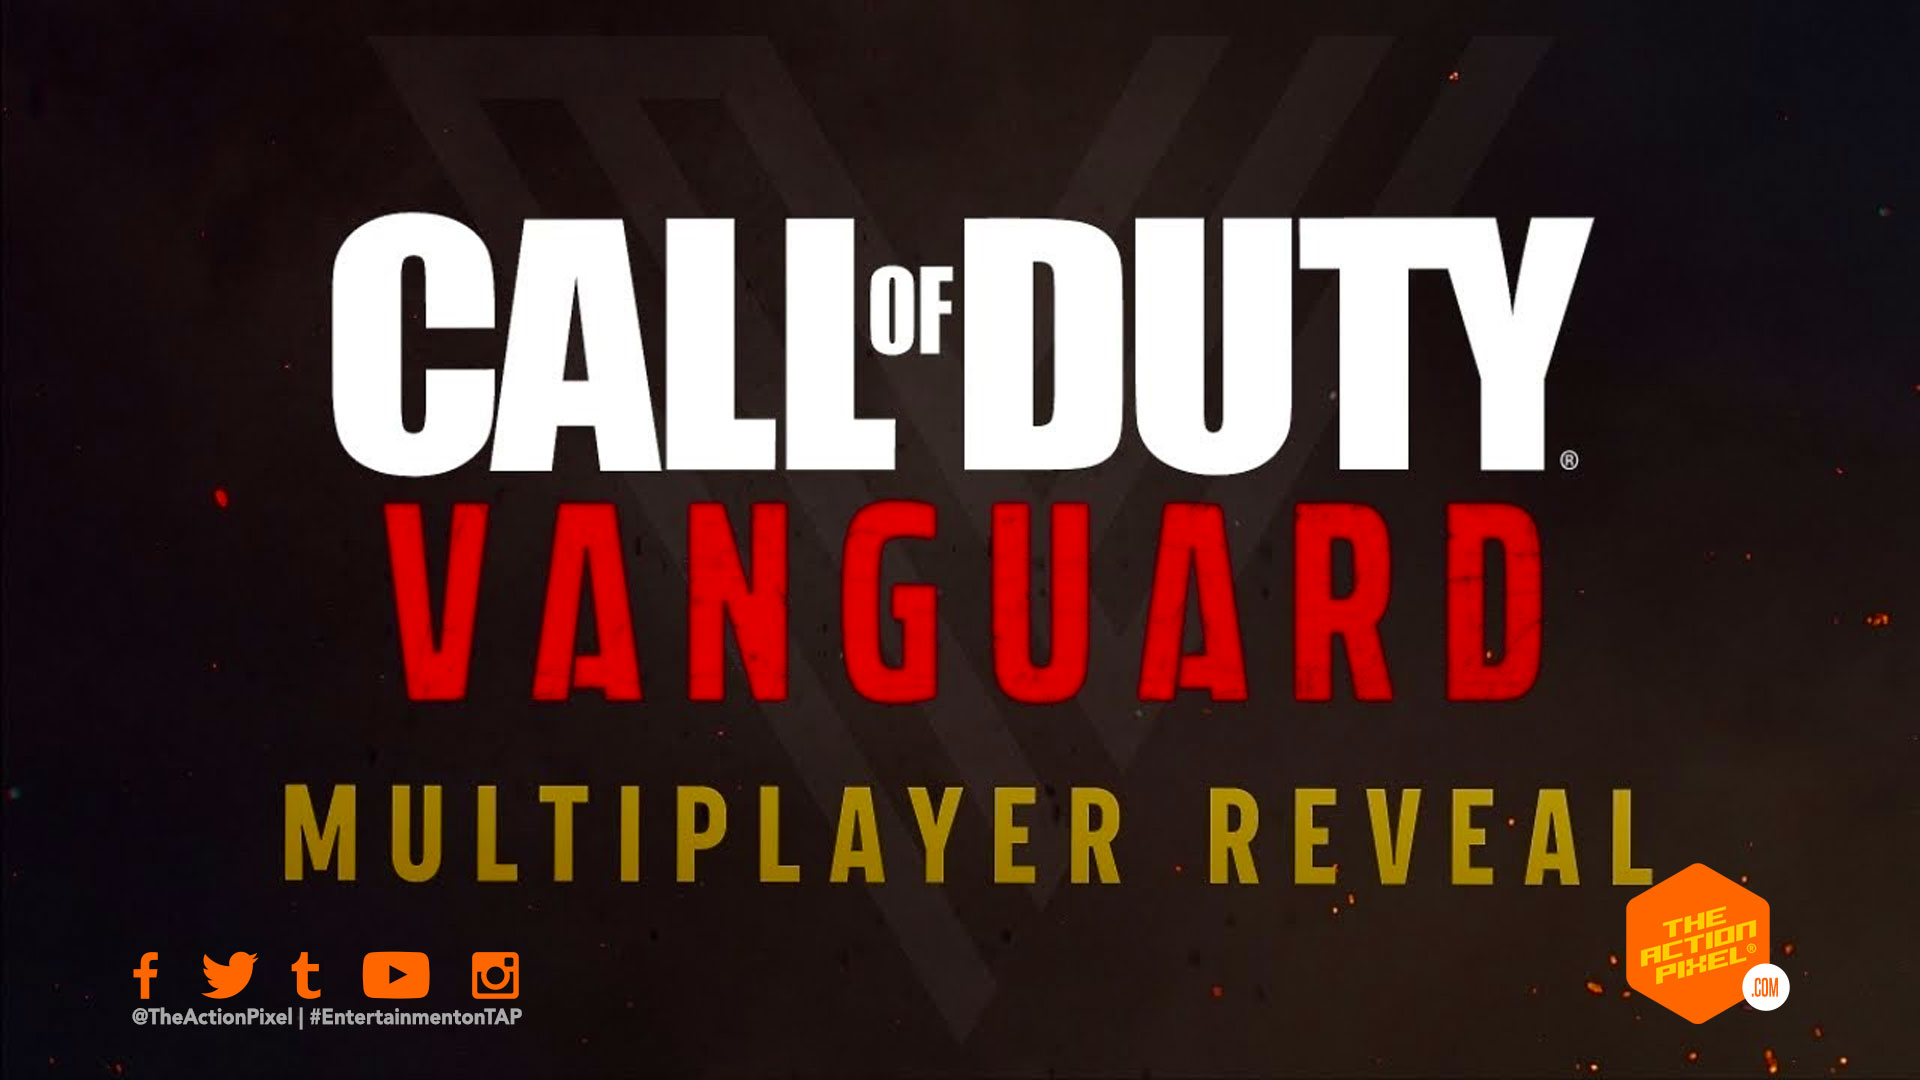 call of duty, call of duty: vanguard, cod vanguard, multiplayer, call of duty vanguard, call of duty vanguard multiplayer trailer, entertainment on tap, the action pixel,